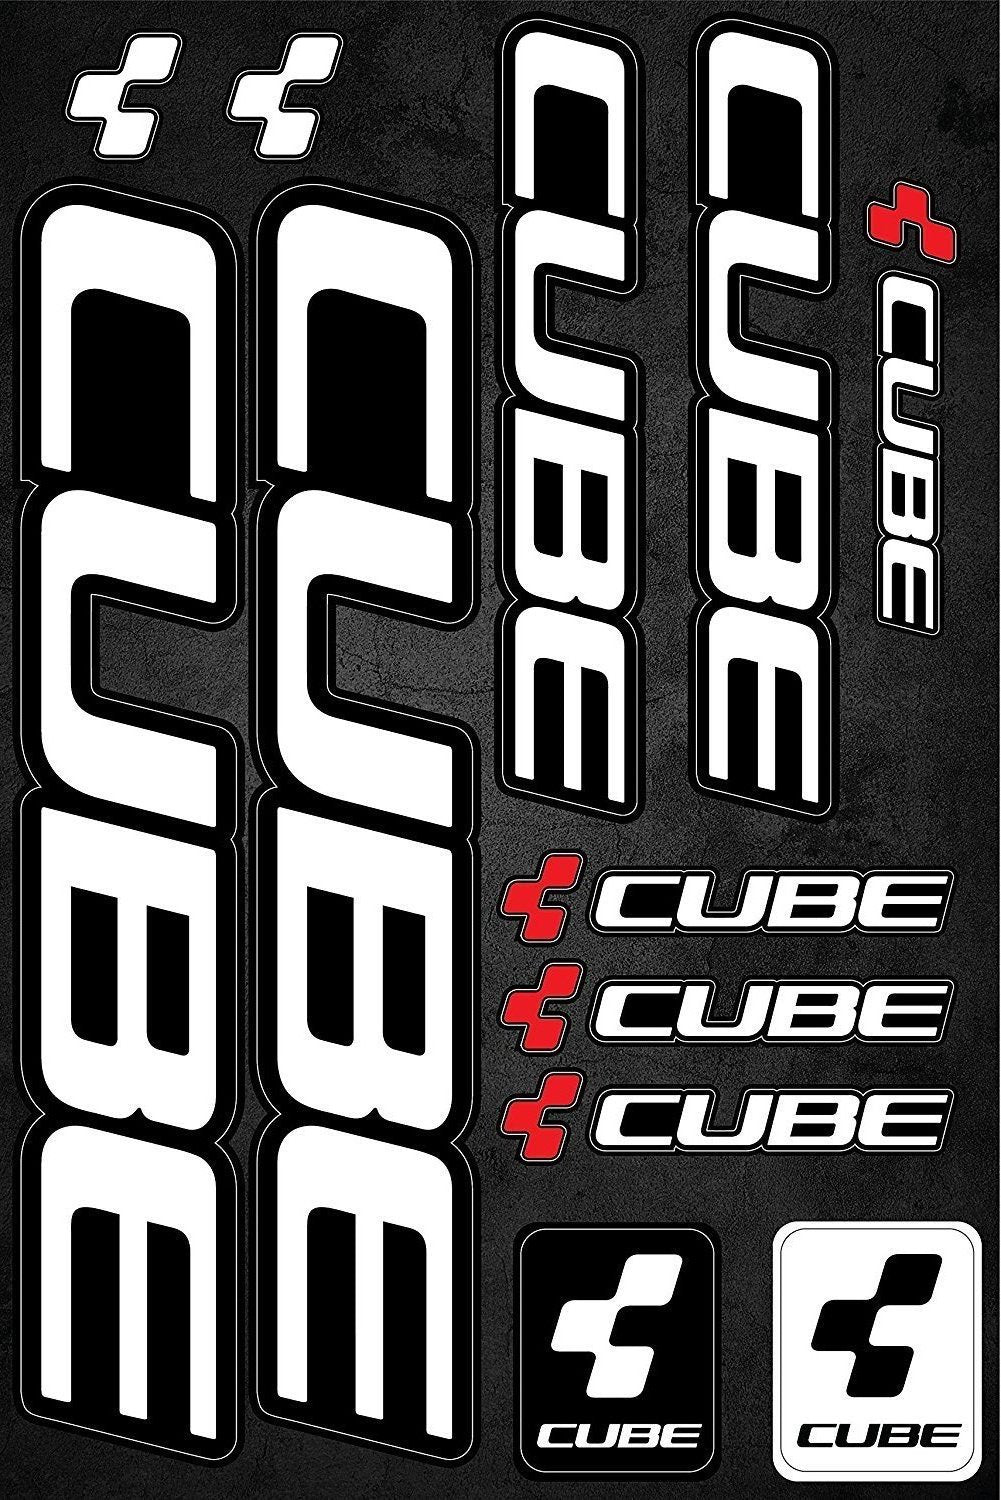 Cube self-adhesive sticker for a bike - Art Life Decor